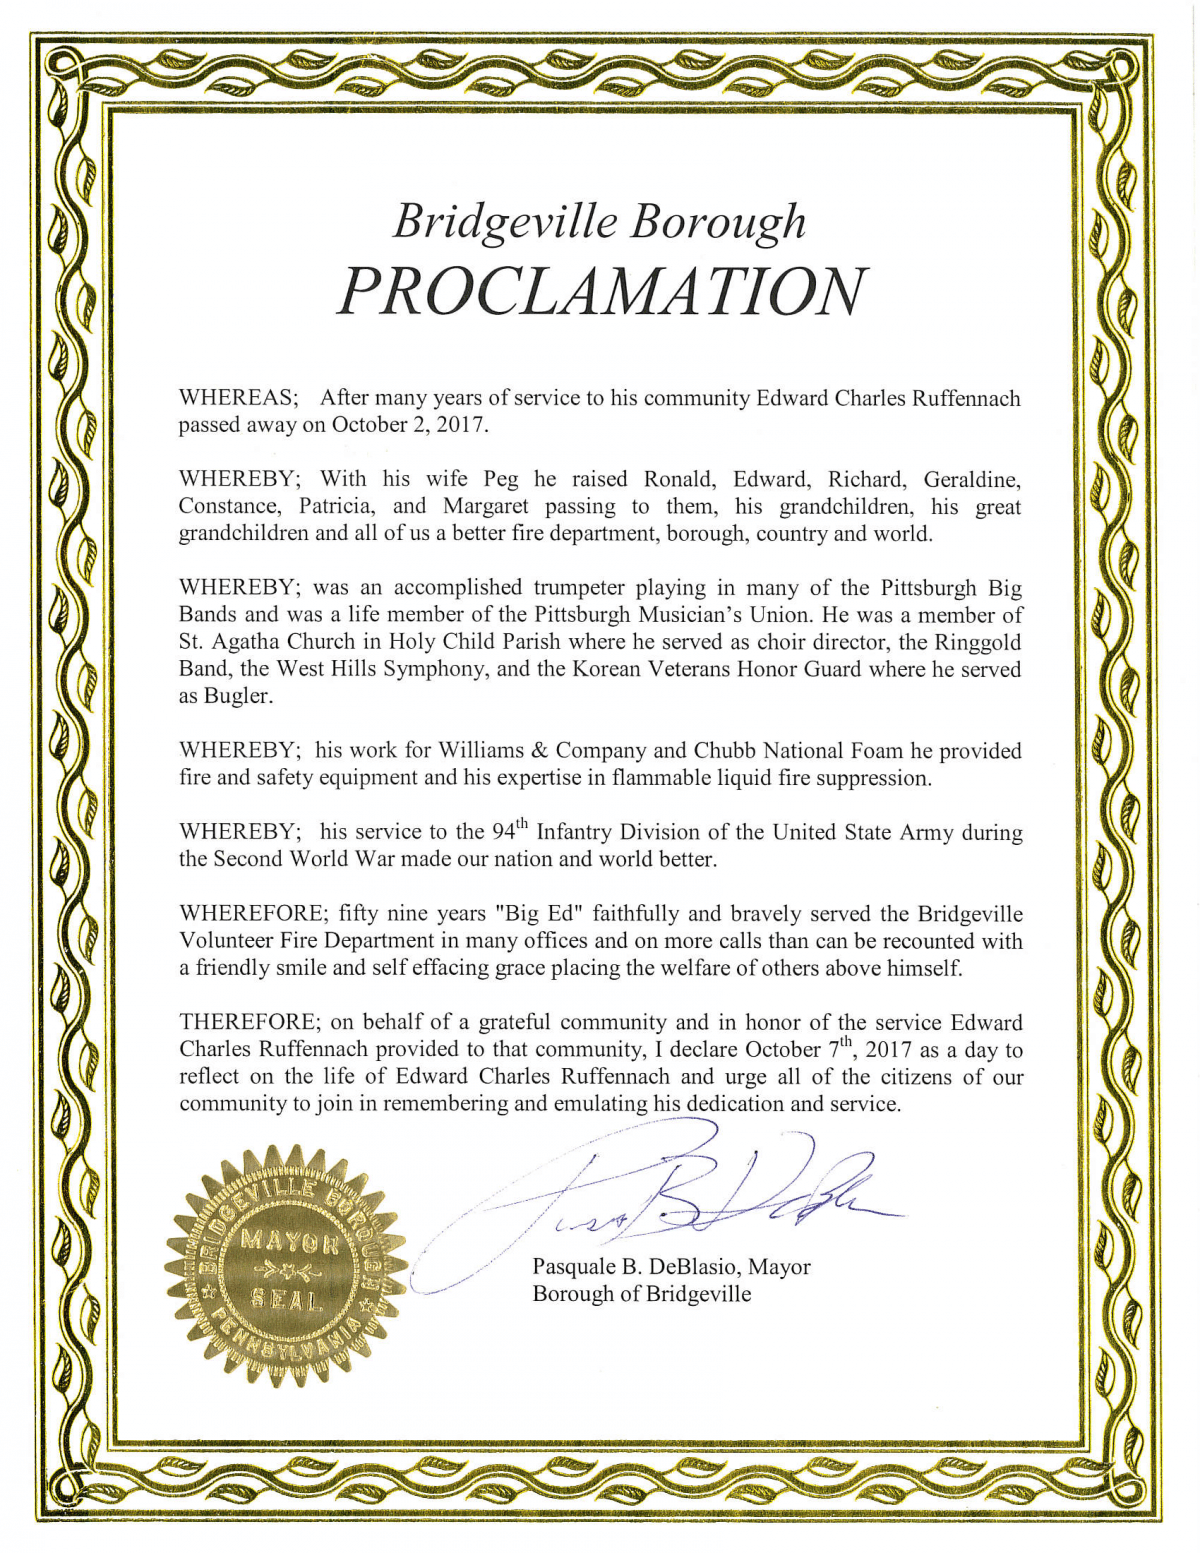 Full text of Bridgeville Mayor Pat DeBlasio's proclamation announcing Oct 7 as a day to honor the memory of Ed Ruffennach